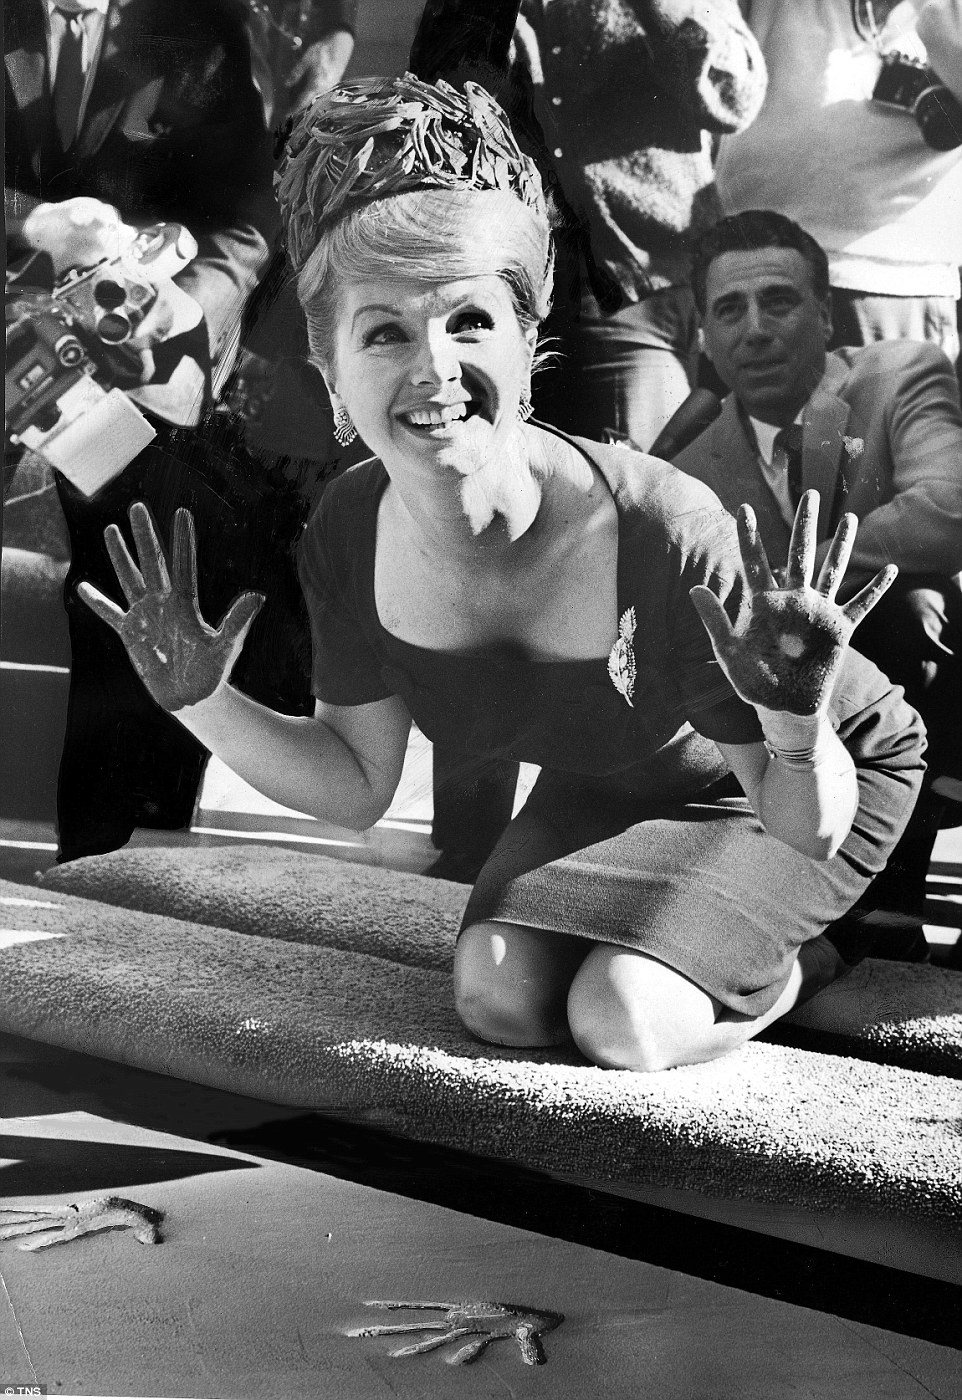 Debbie was such a household name by the mid-1960s, she was invited to leave her mark on the street outside Grauman's Chinese Theatre in Hollywood